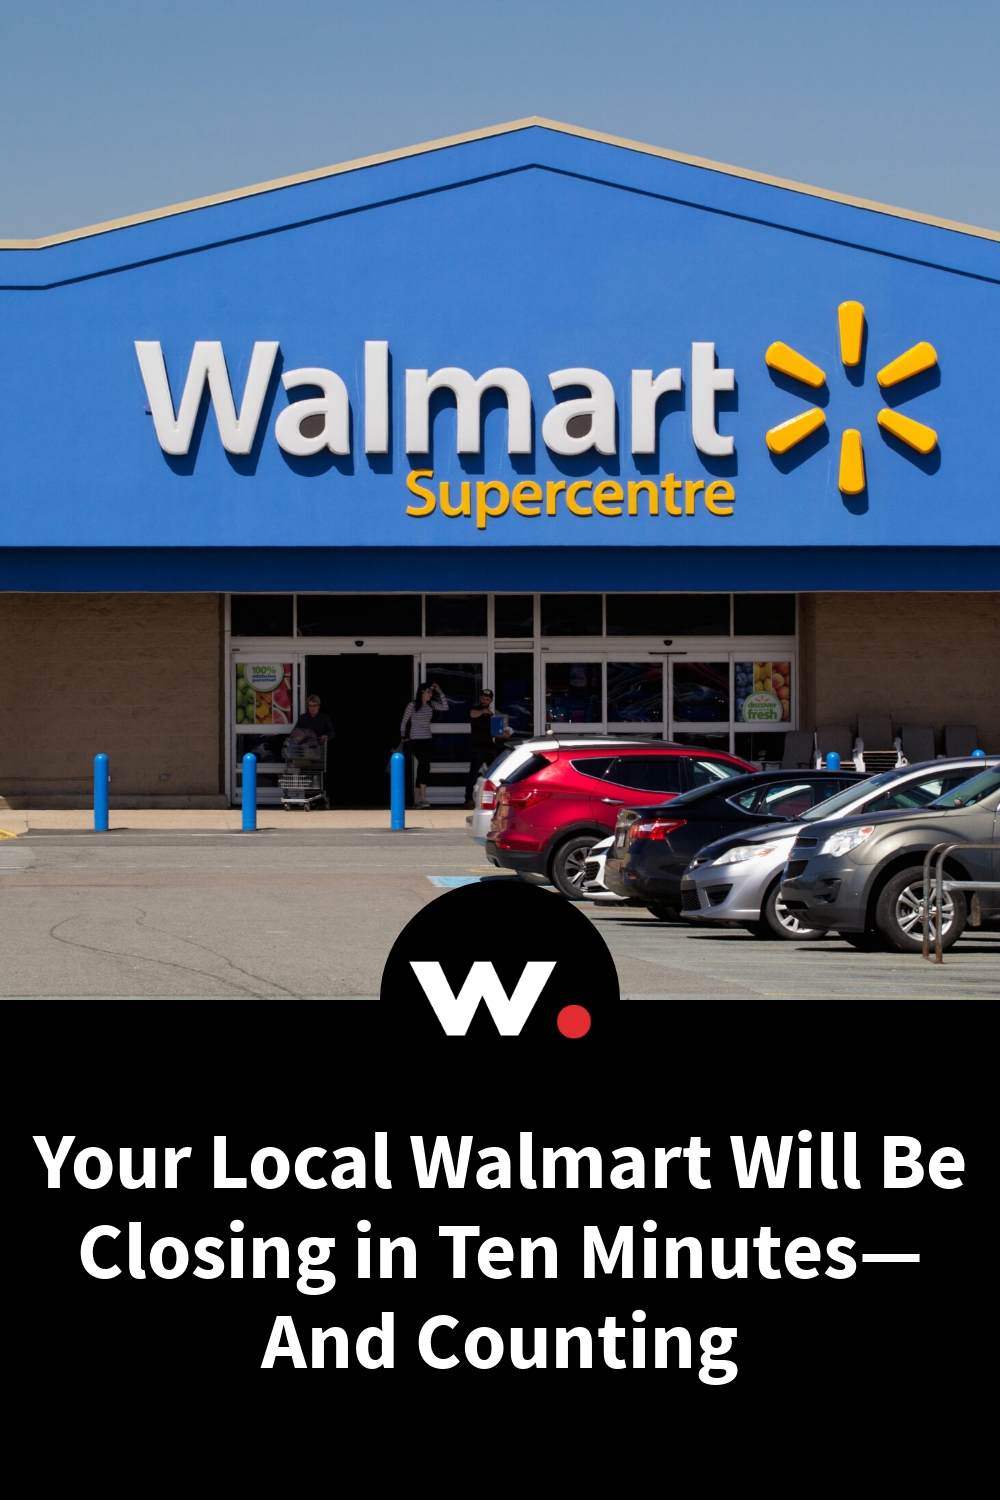 Your Local Walmart Will Be Closing in Ten Minutes—And Counting